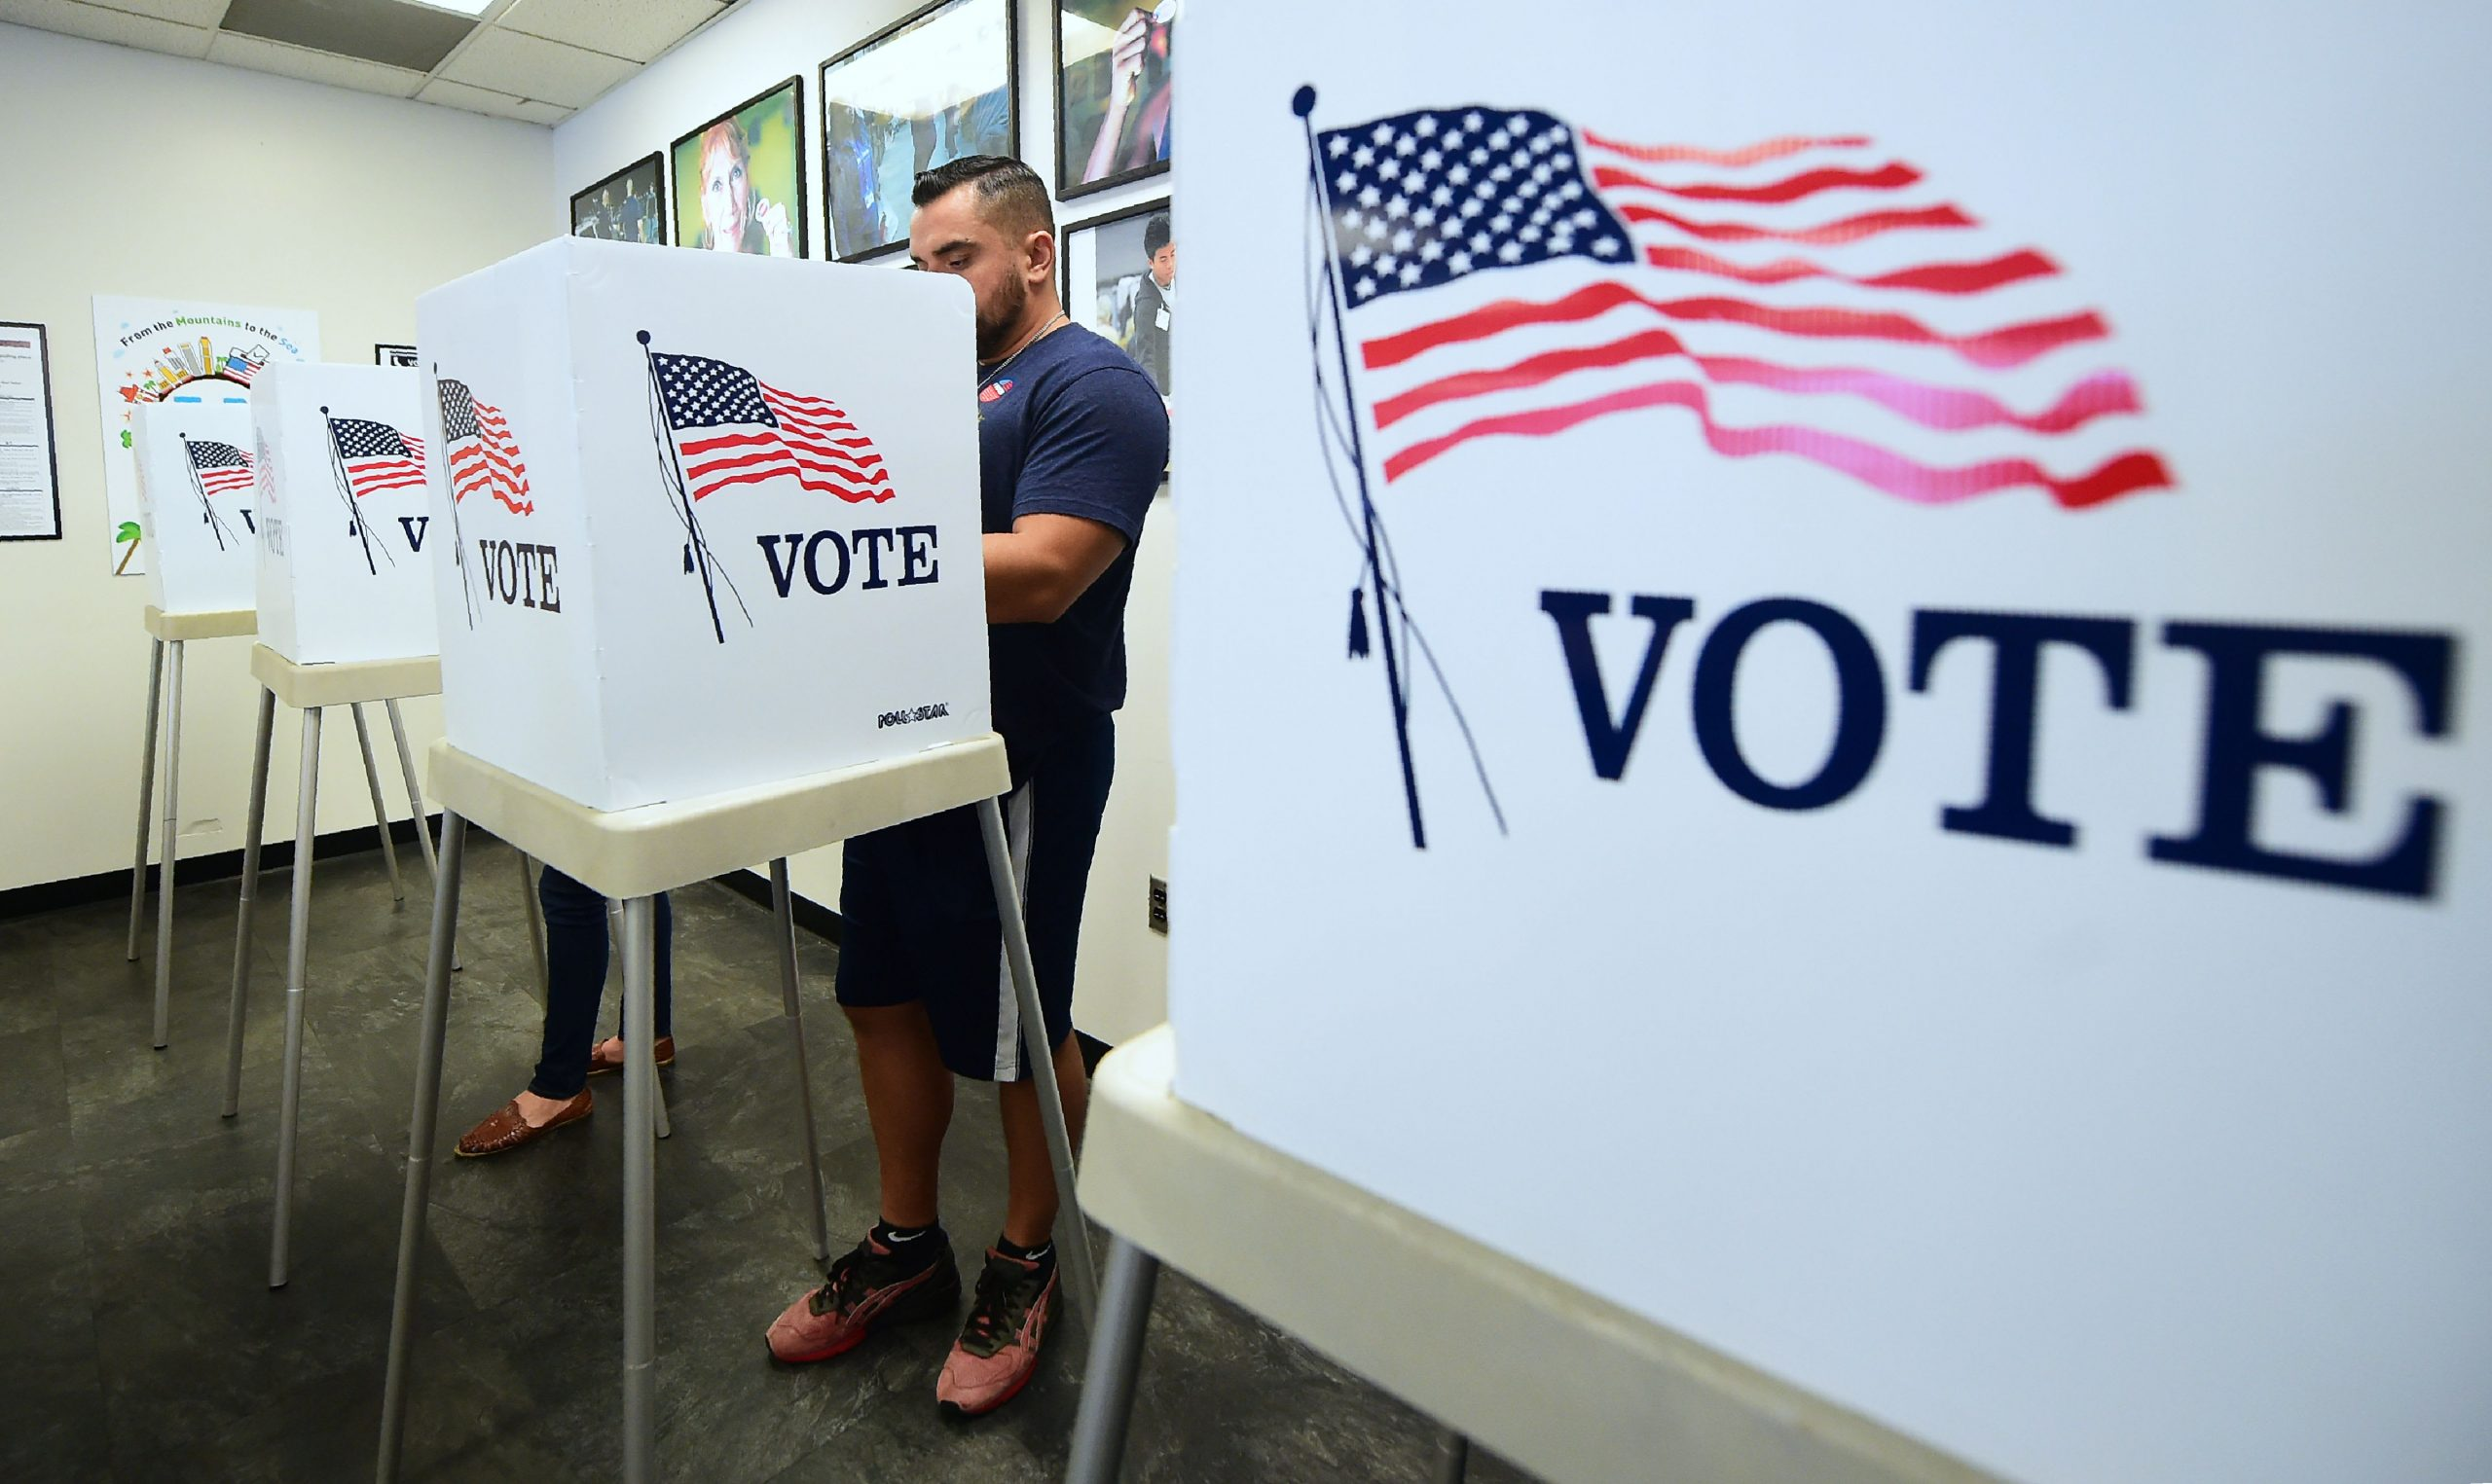 Teams aim to set up 2020 election polling sites